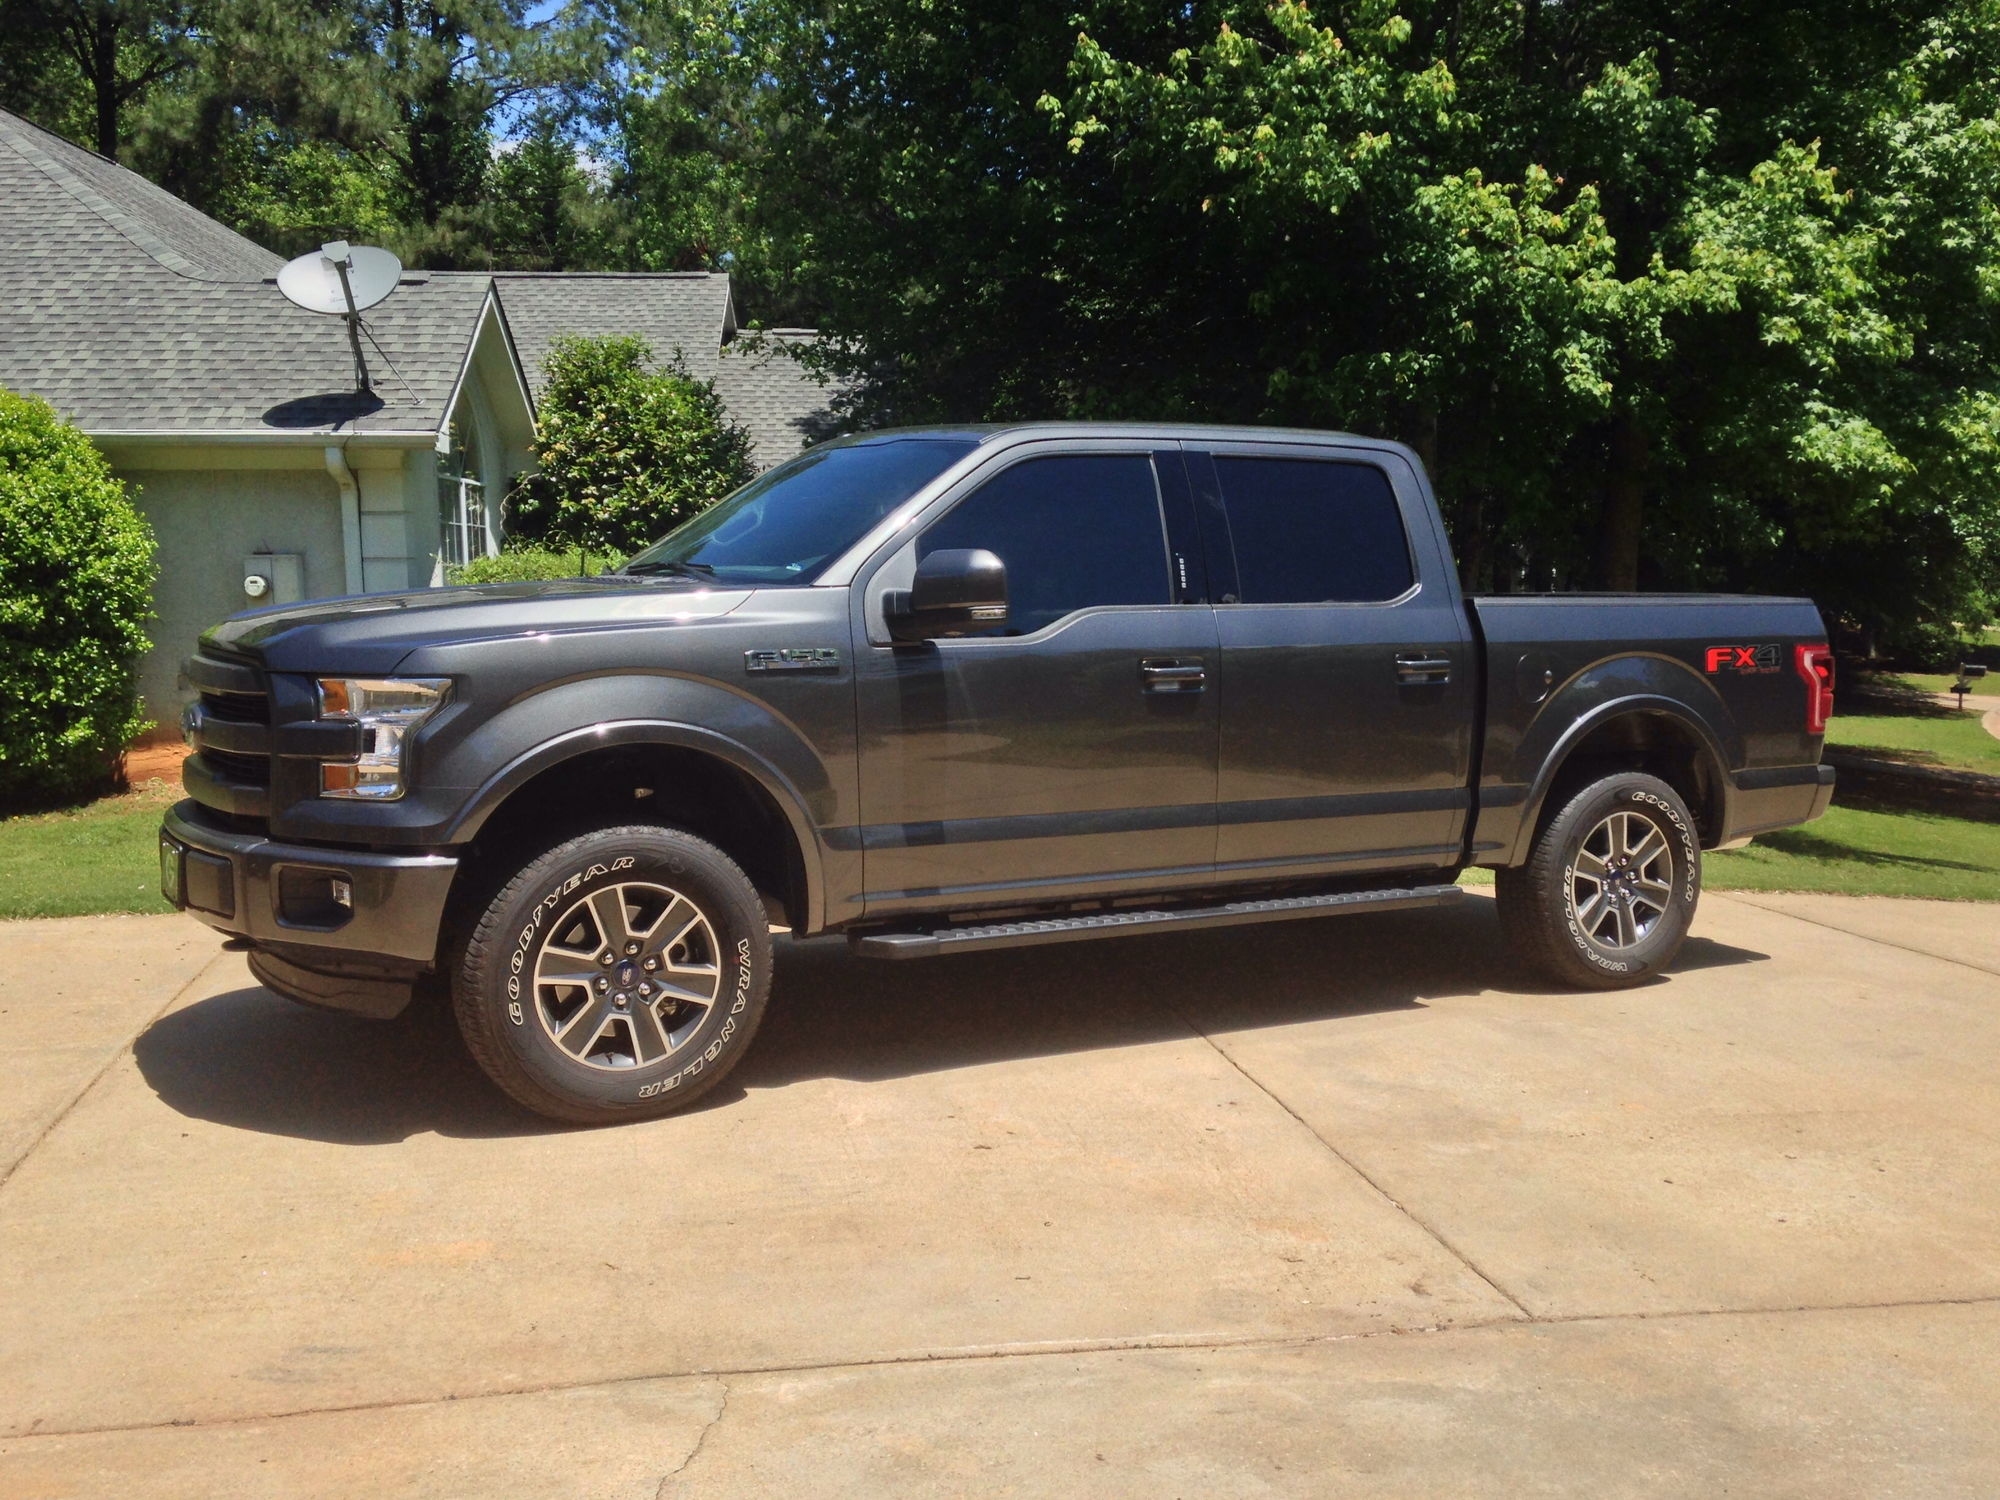 2015 f150 owner picture thread page 80 ford f150 forum community of ford truck fans. Black Bedroom Furniture Sets. Home Design Ideas